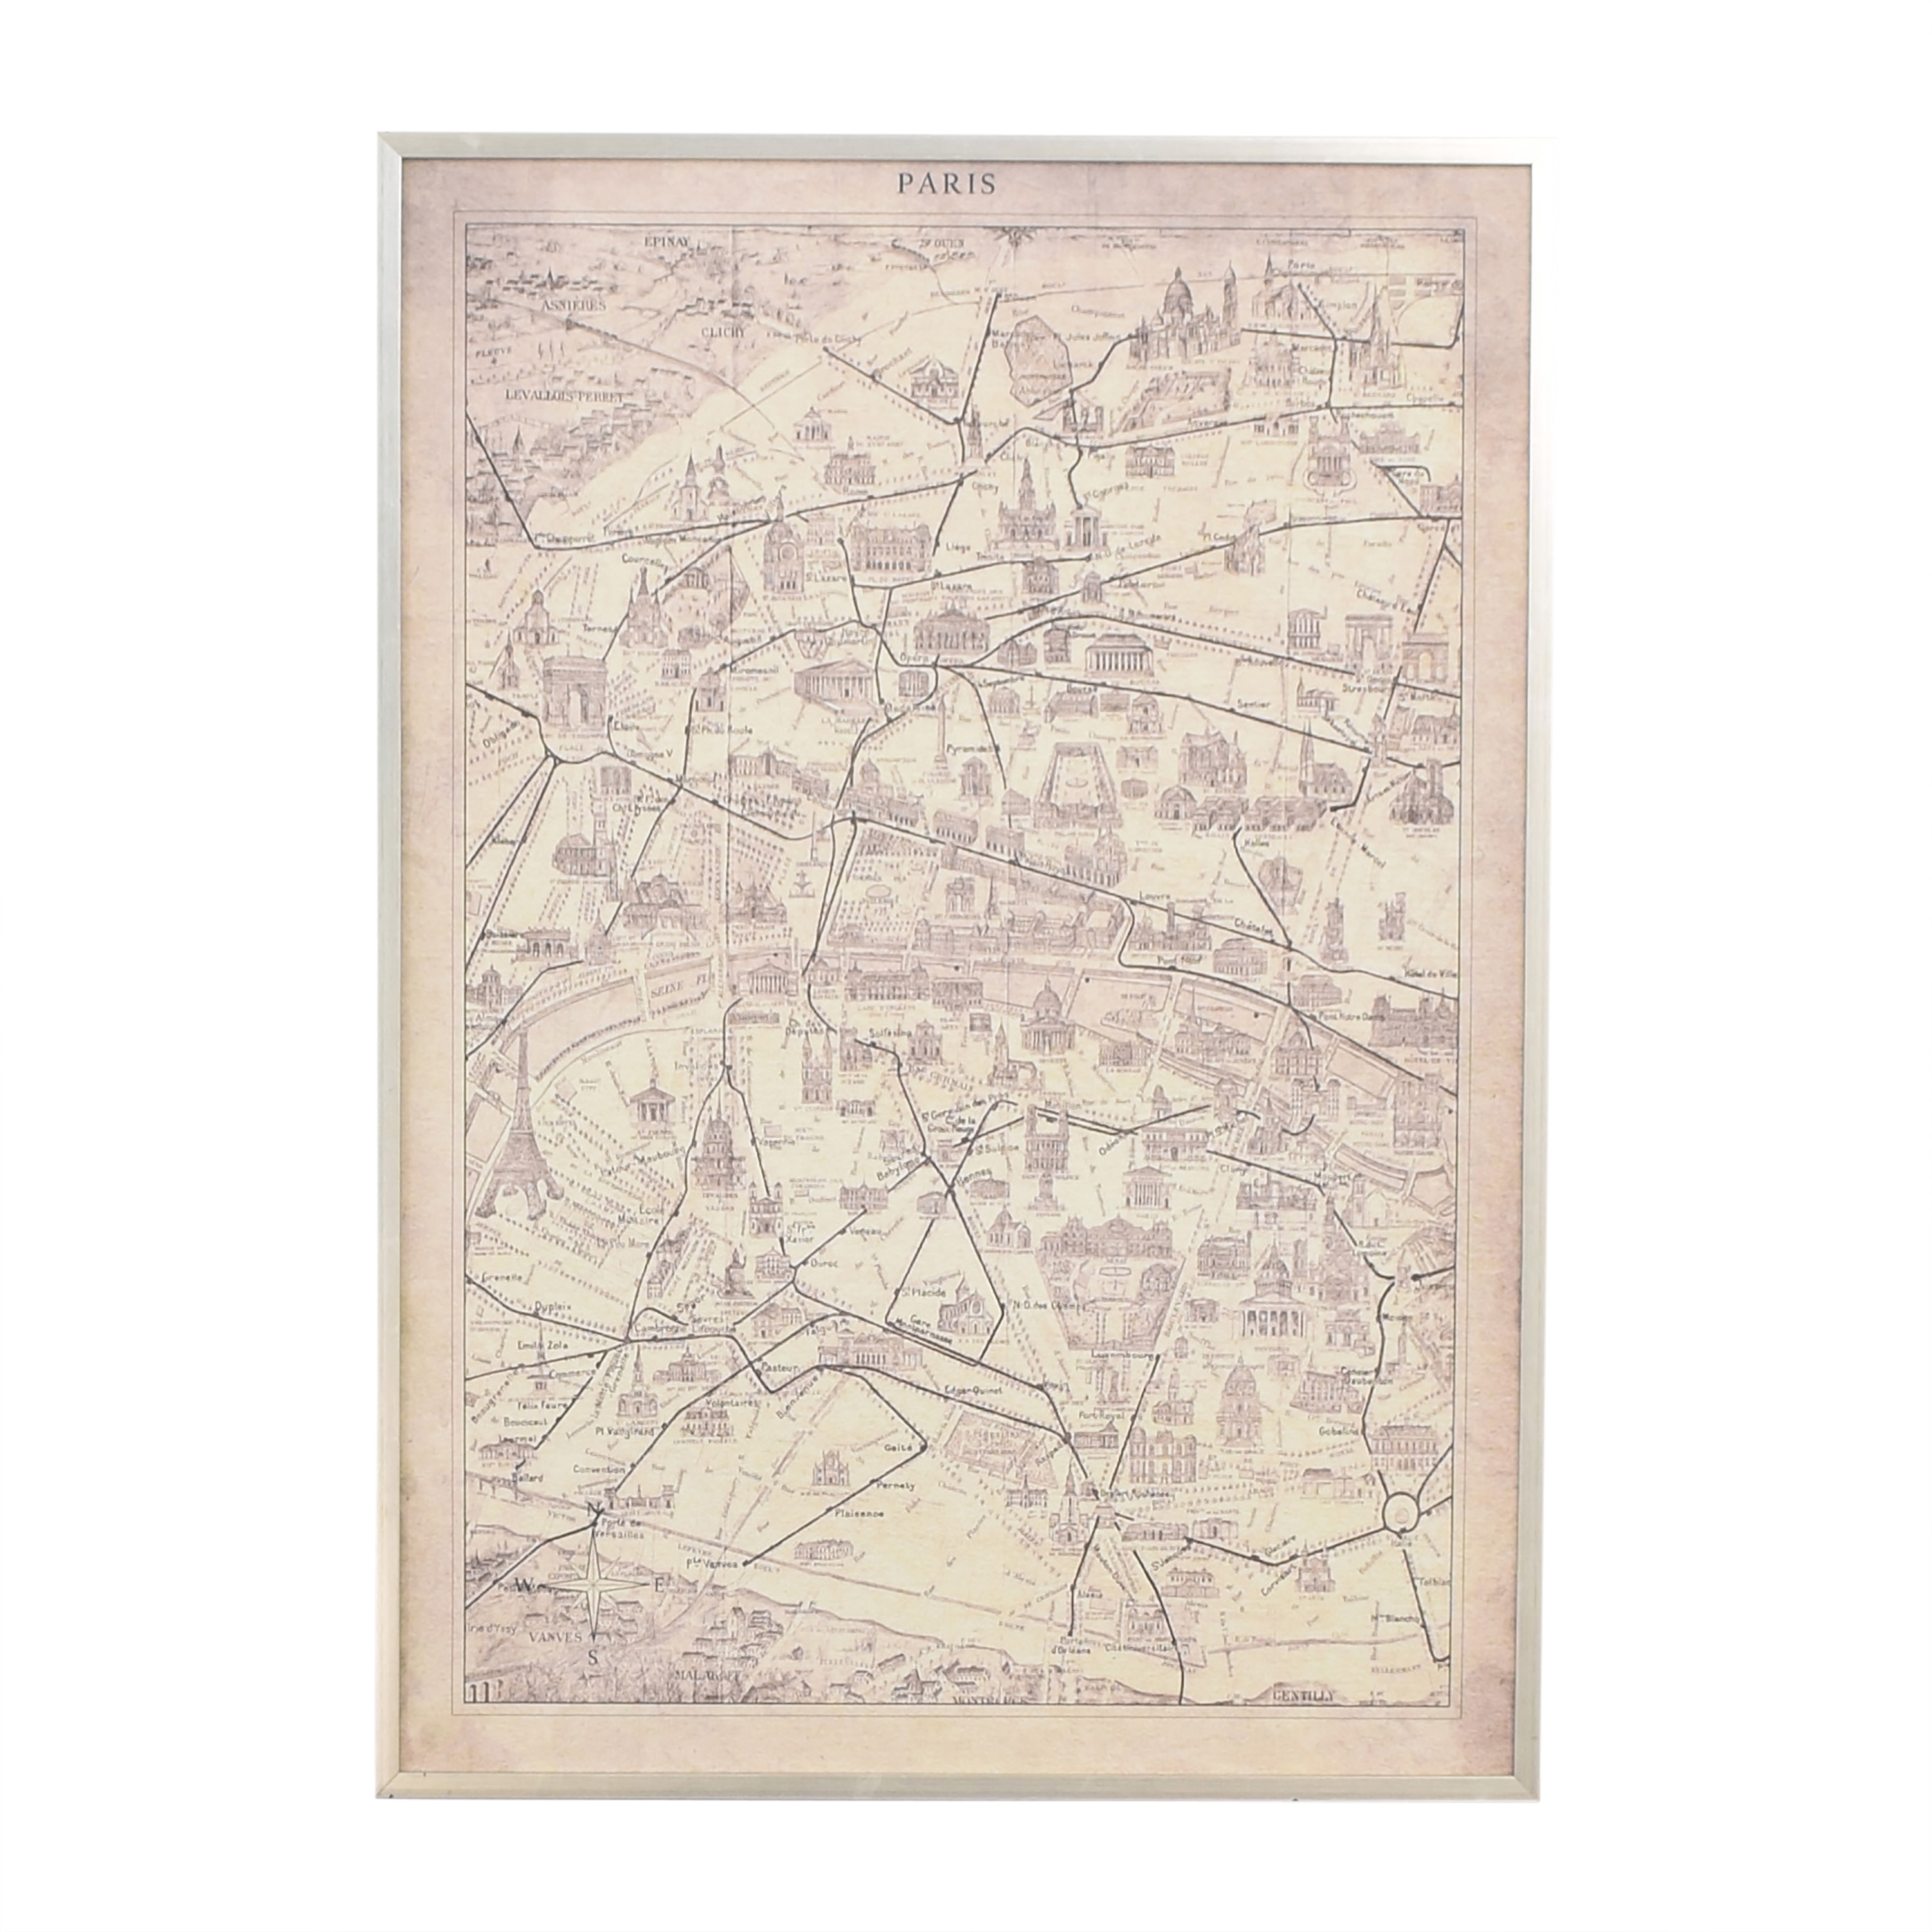 Ethan Allen Ethan Allen Framed Paris Map Wall Art ma